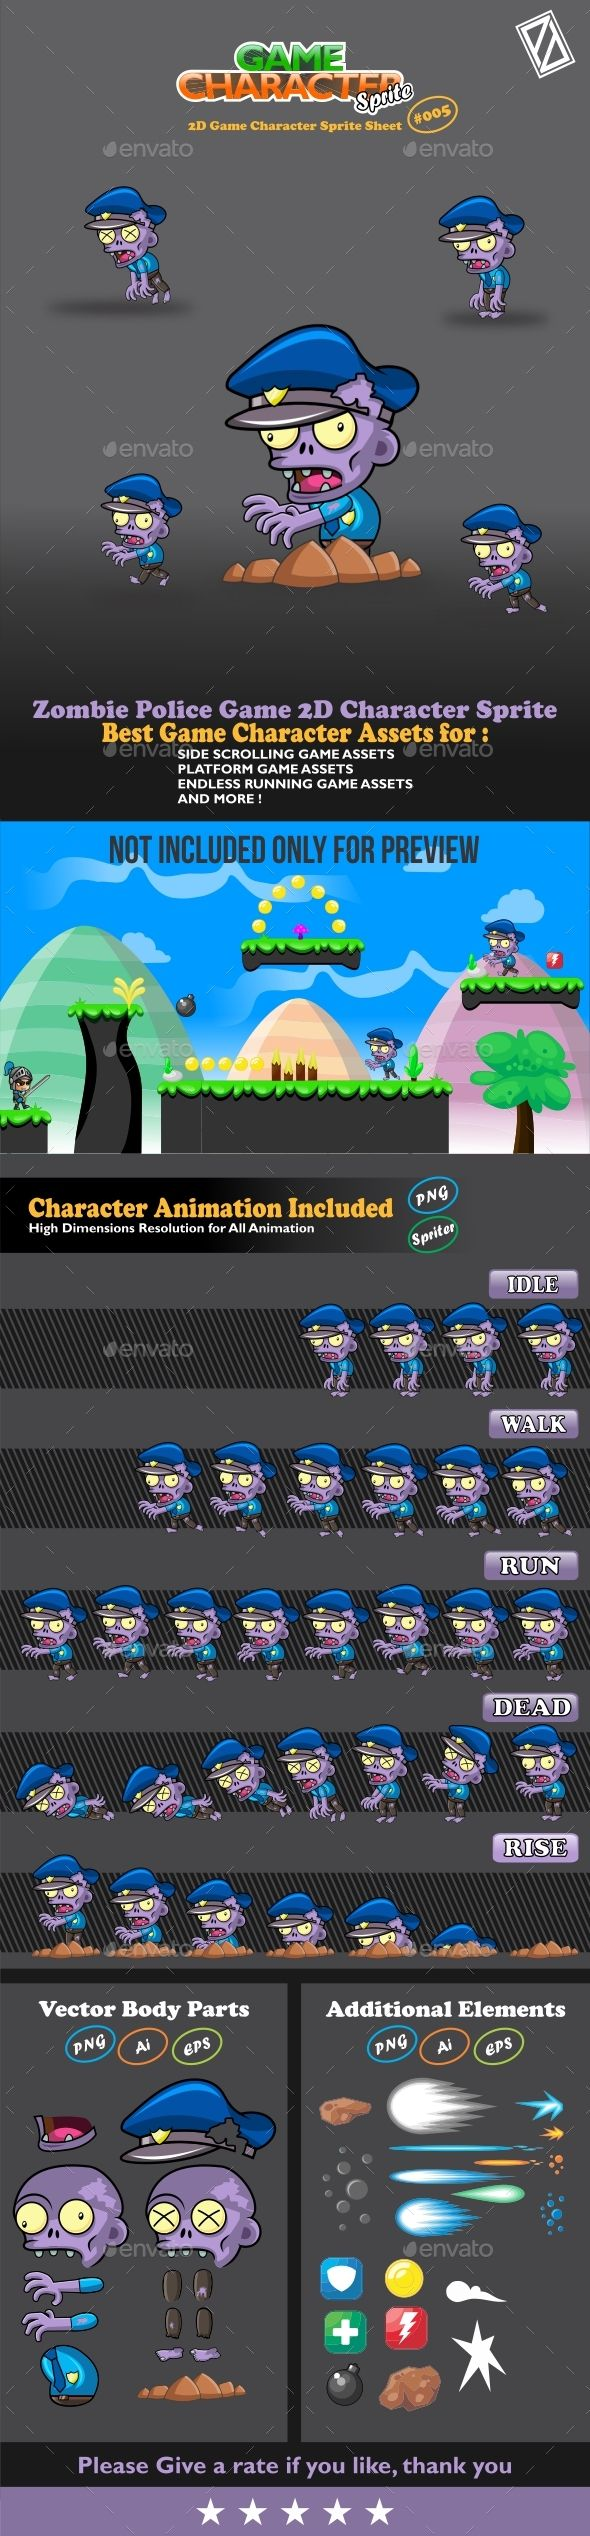 Zombie Police Game 2D Character Sprite | DOWNLOAD:  https://graphicriver.net/item/zombie-police-game-2d-character-sprite/20185511?ref=sinzo #Sprites #Game #Assets